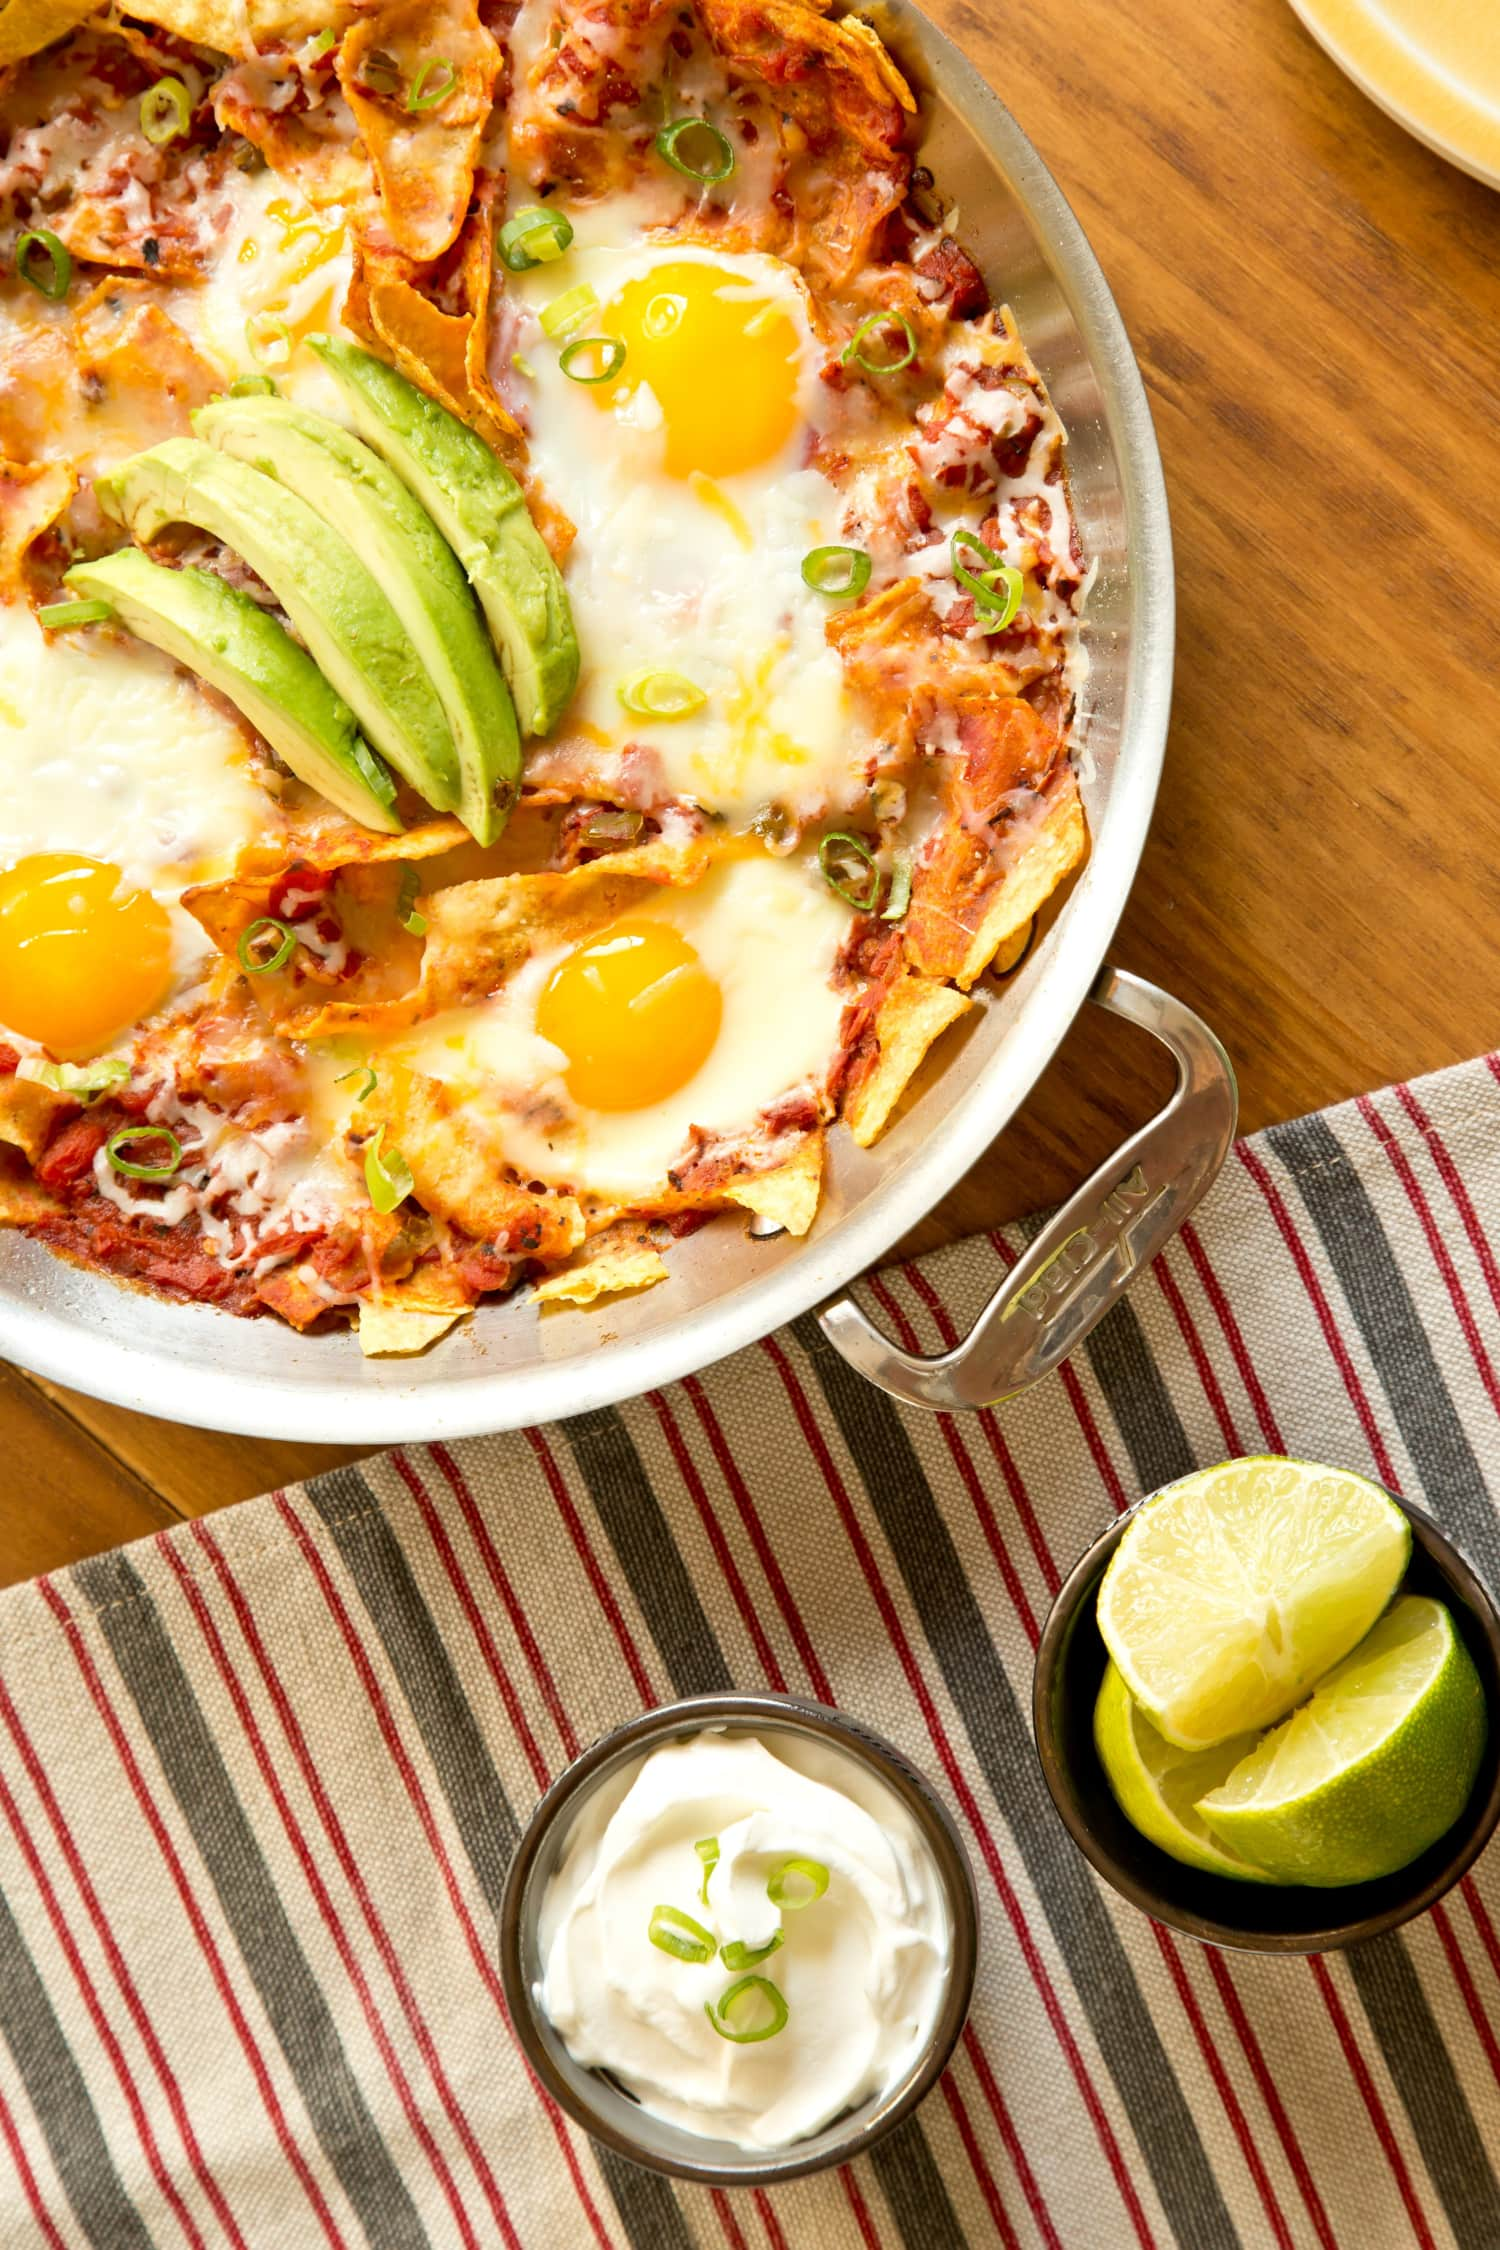 Recipe: Skillet Chipotle Chilaquiles with Eggs